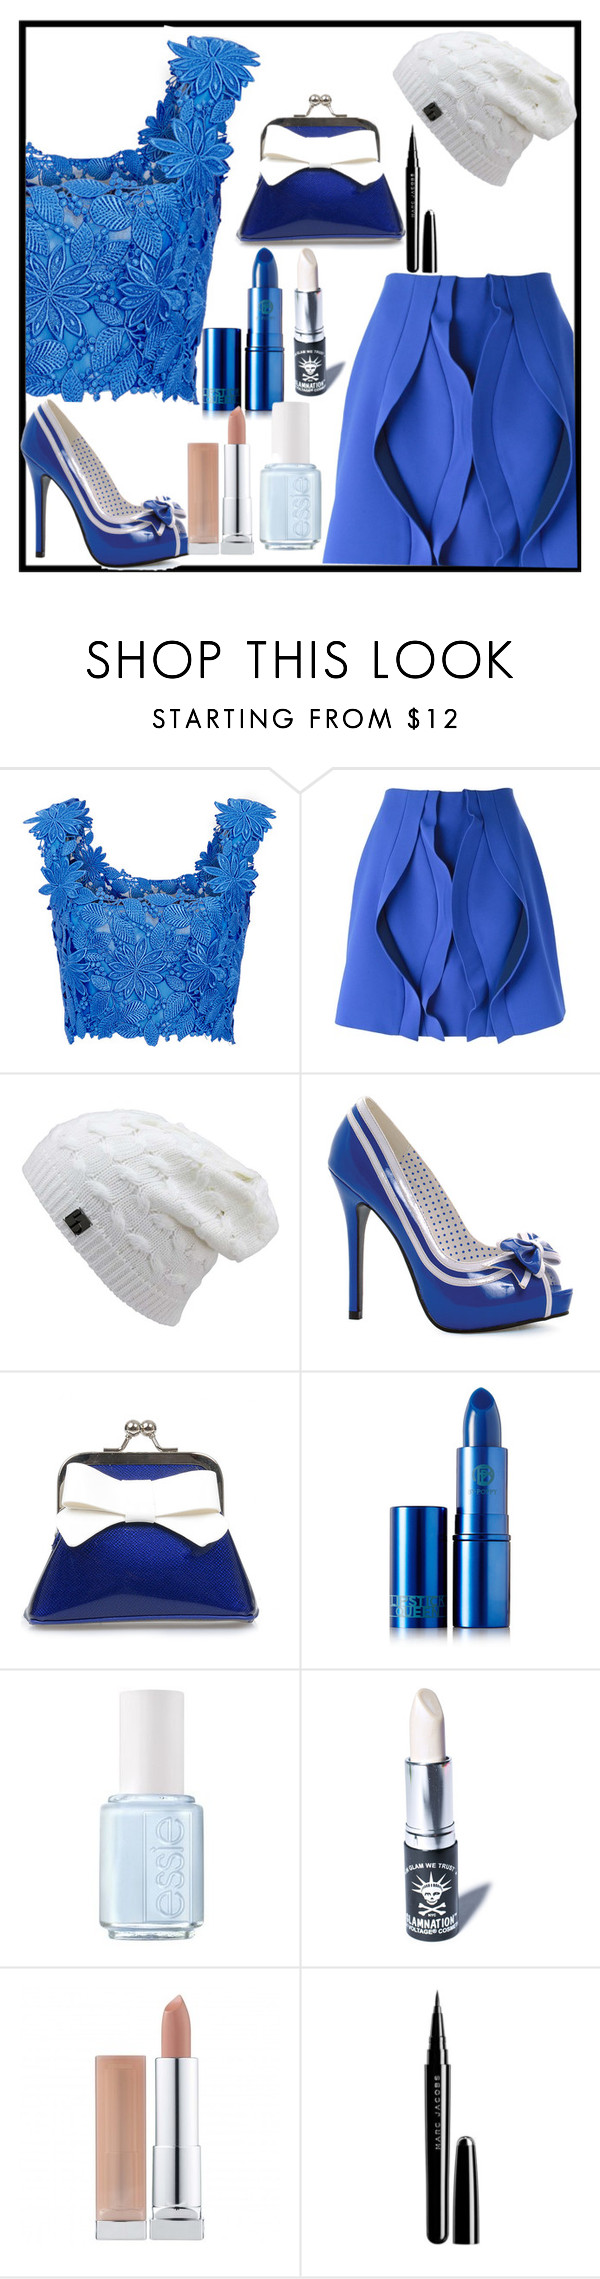 """Untitled #352"" by moniquedawson09123 ❤ liked on Polyvore featuring moda, Monique Lhuillier, Opening Ceremony, Ellie, Sourpuss, Lipstick Queen, Essie, Manic Panic e Marc Jacobs"